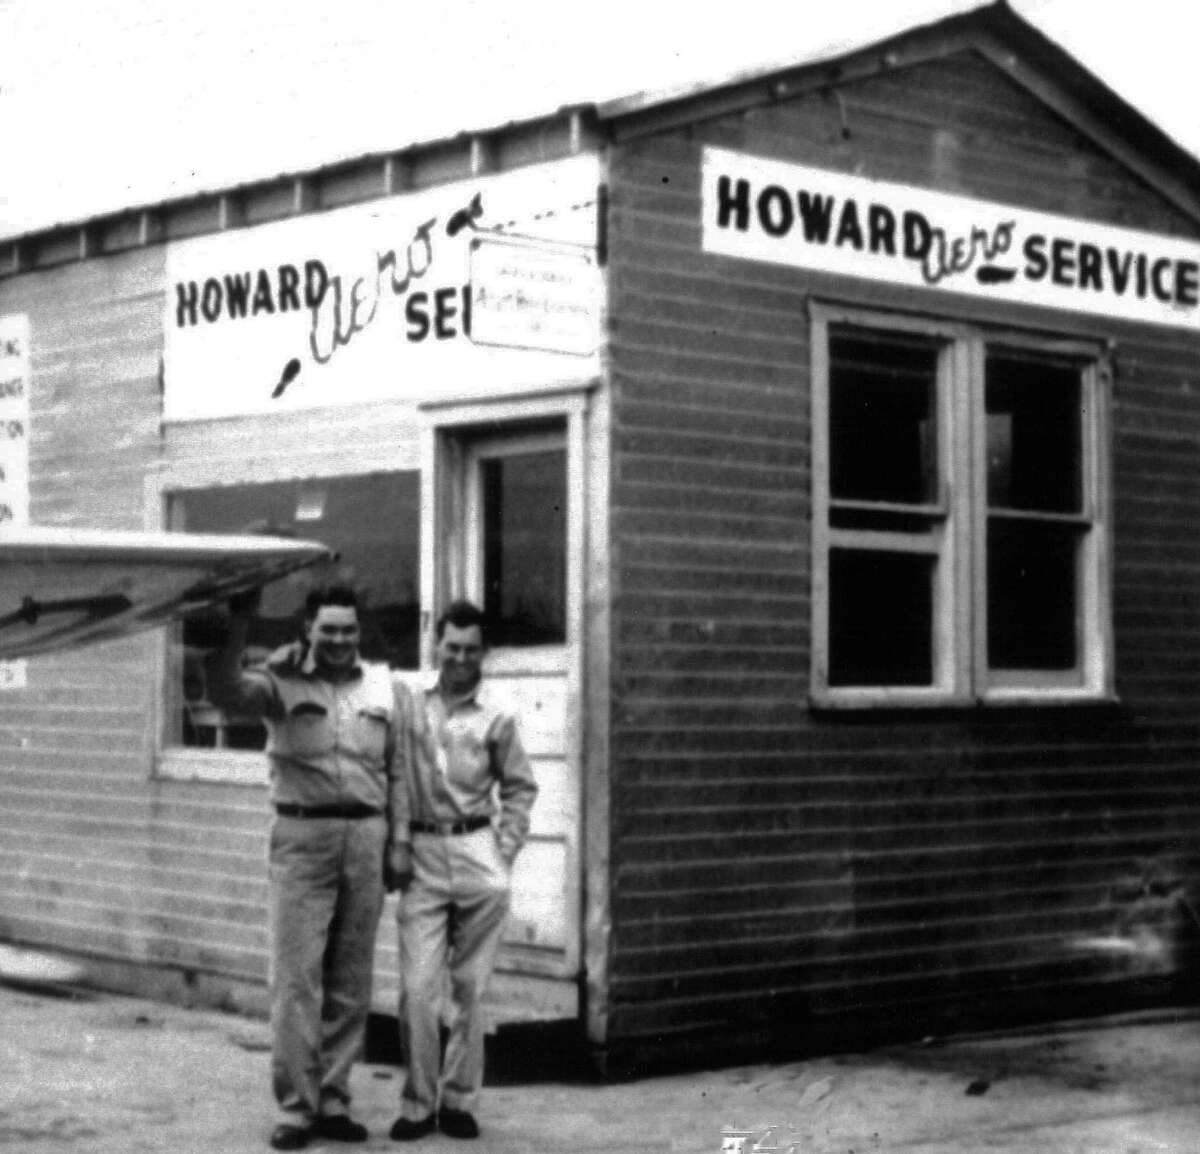 The first building for Howard Aero Service.